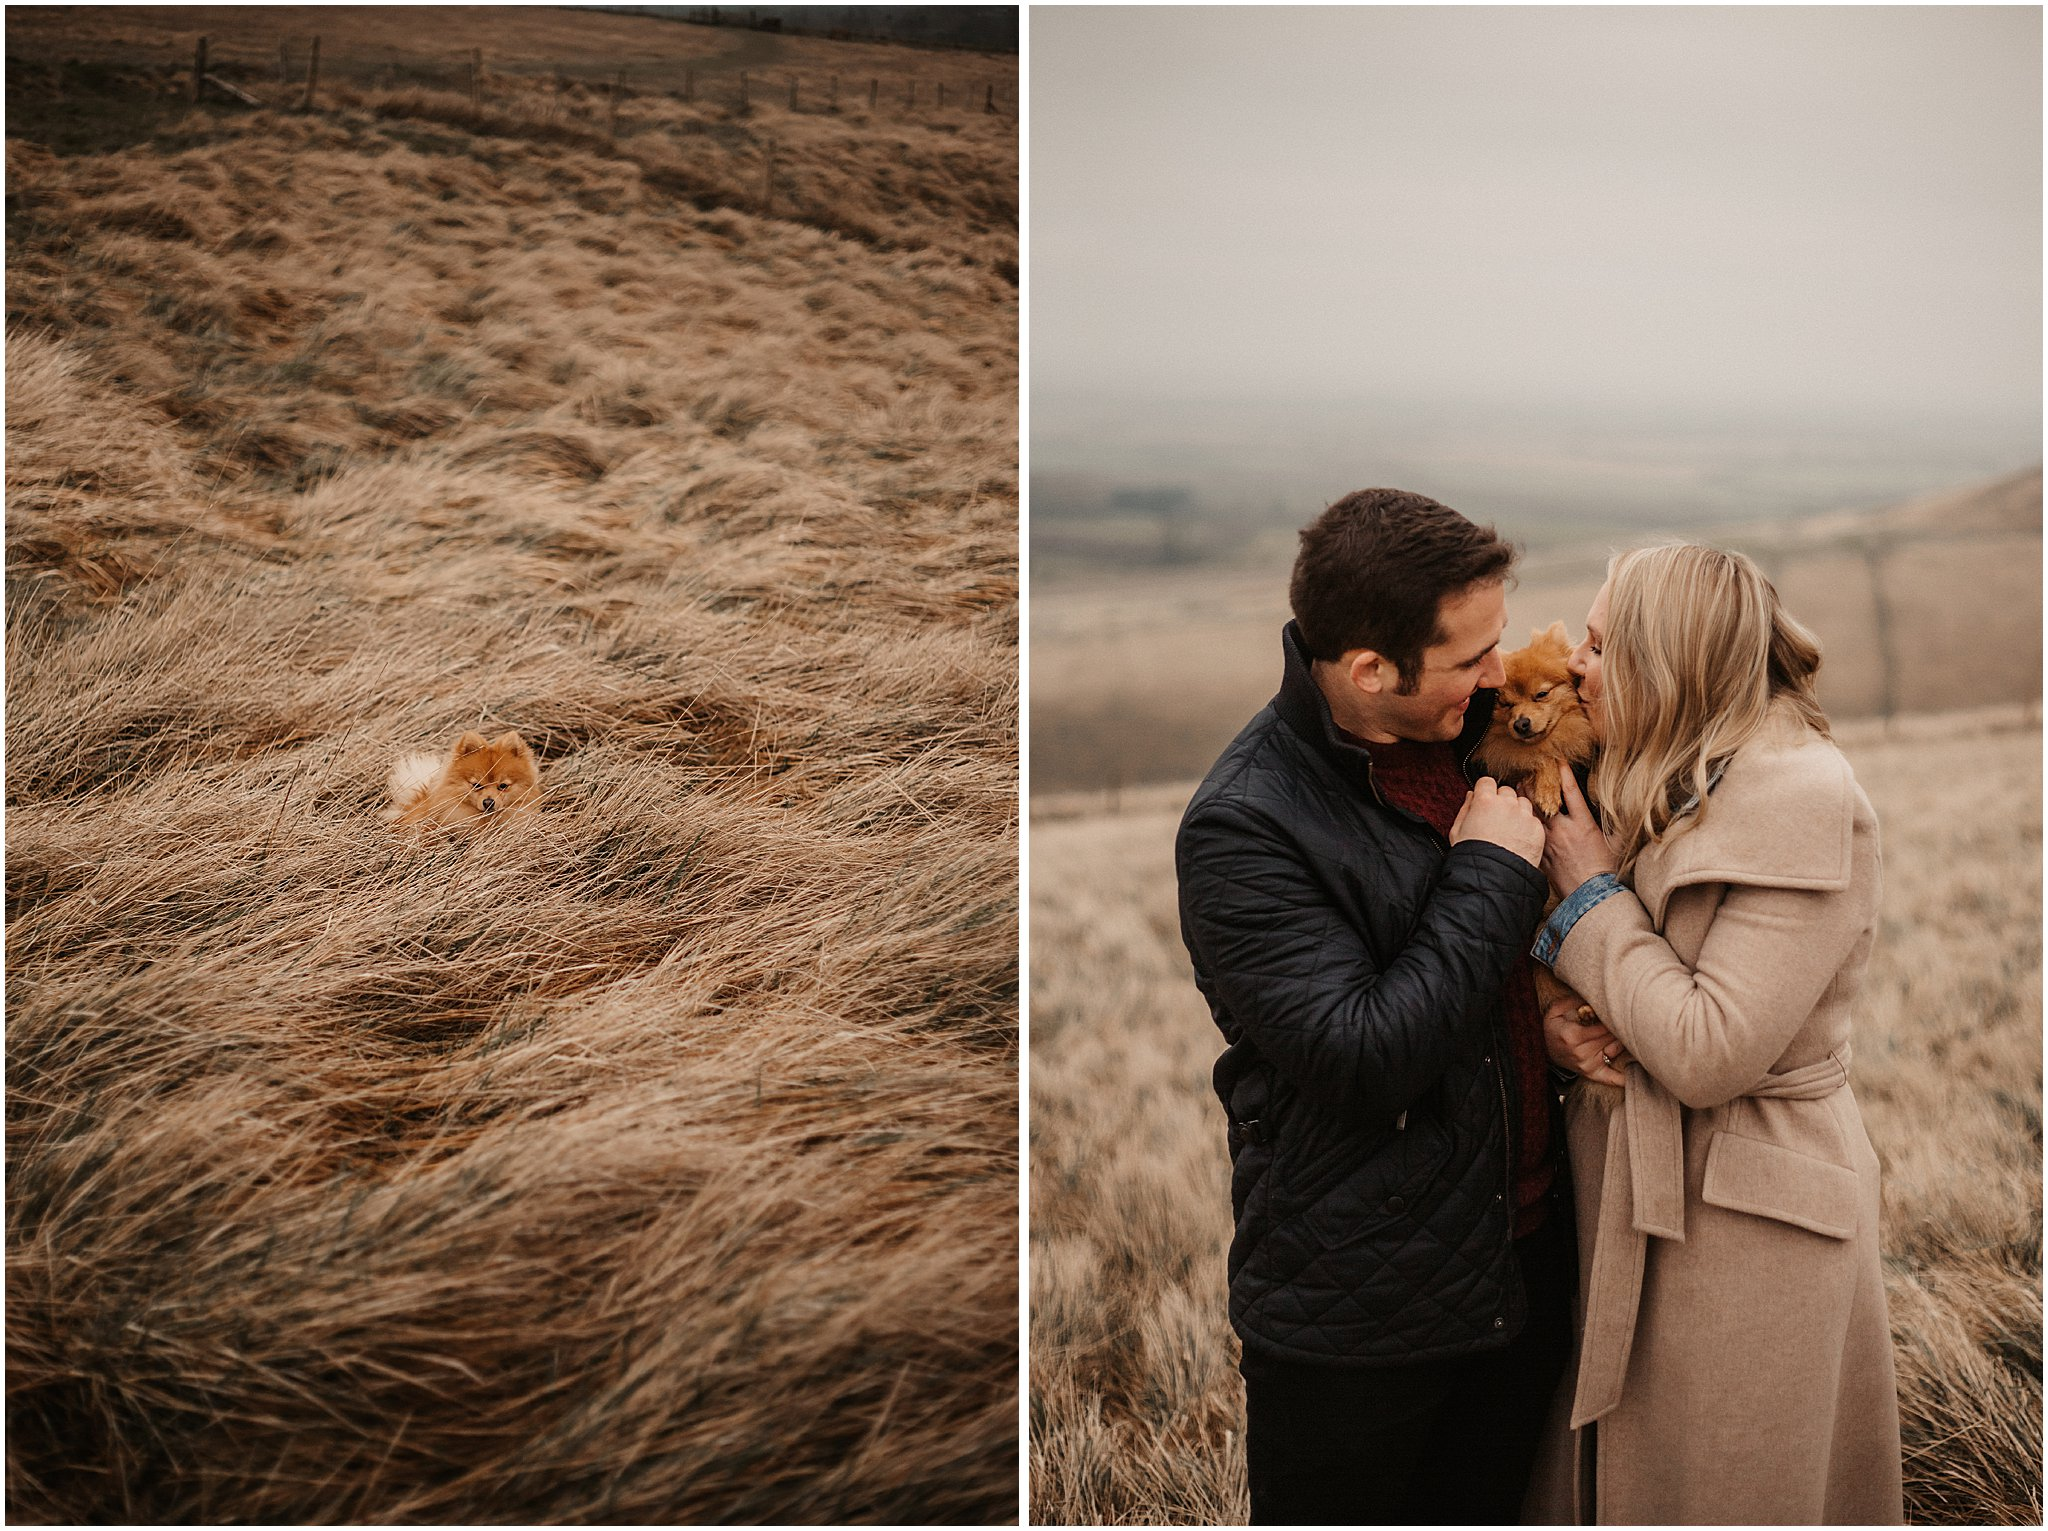 Mike & Charley_s Winter Engagement Shoot Wiltshire-4.jpg